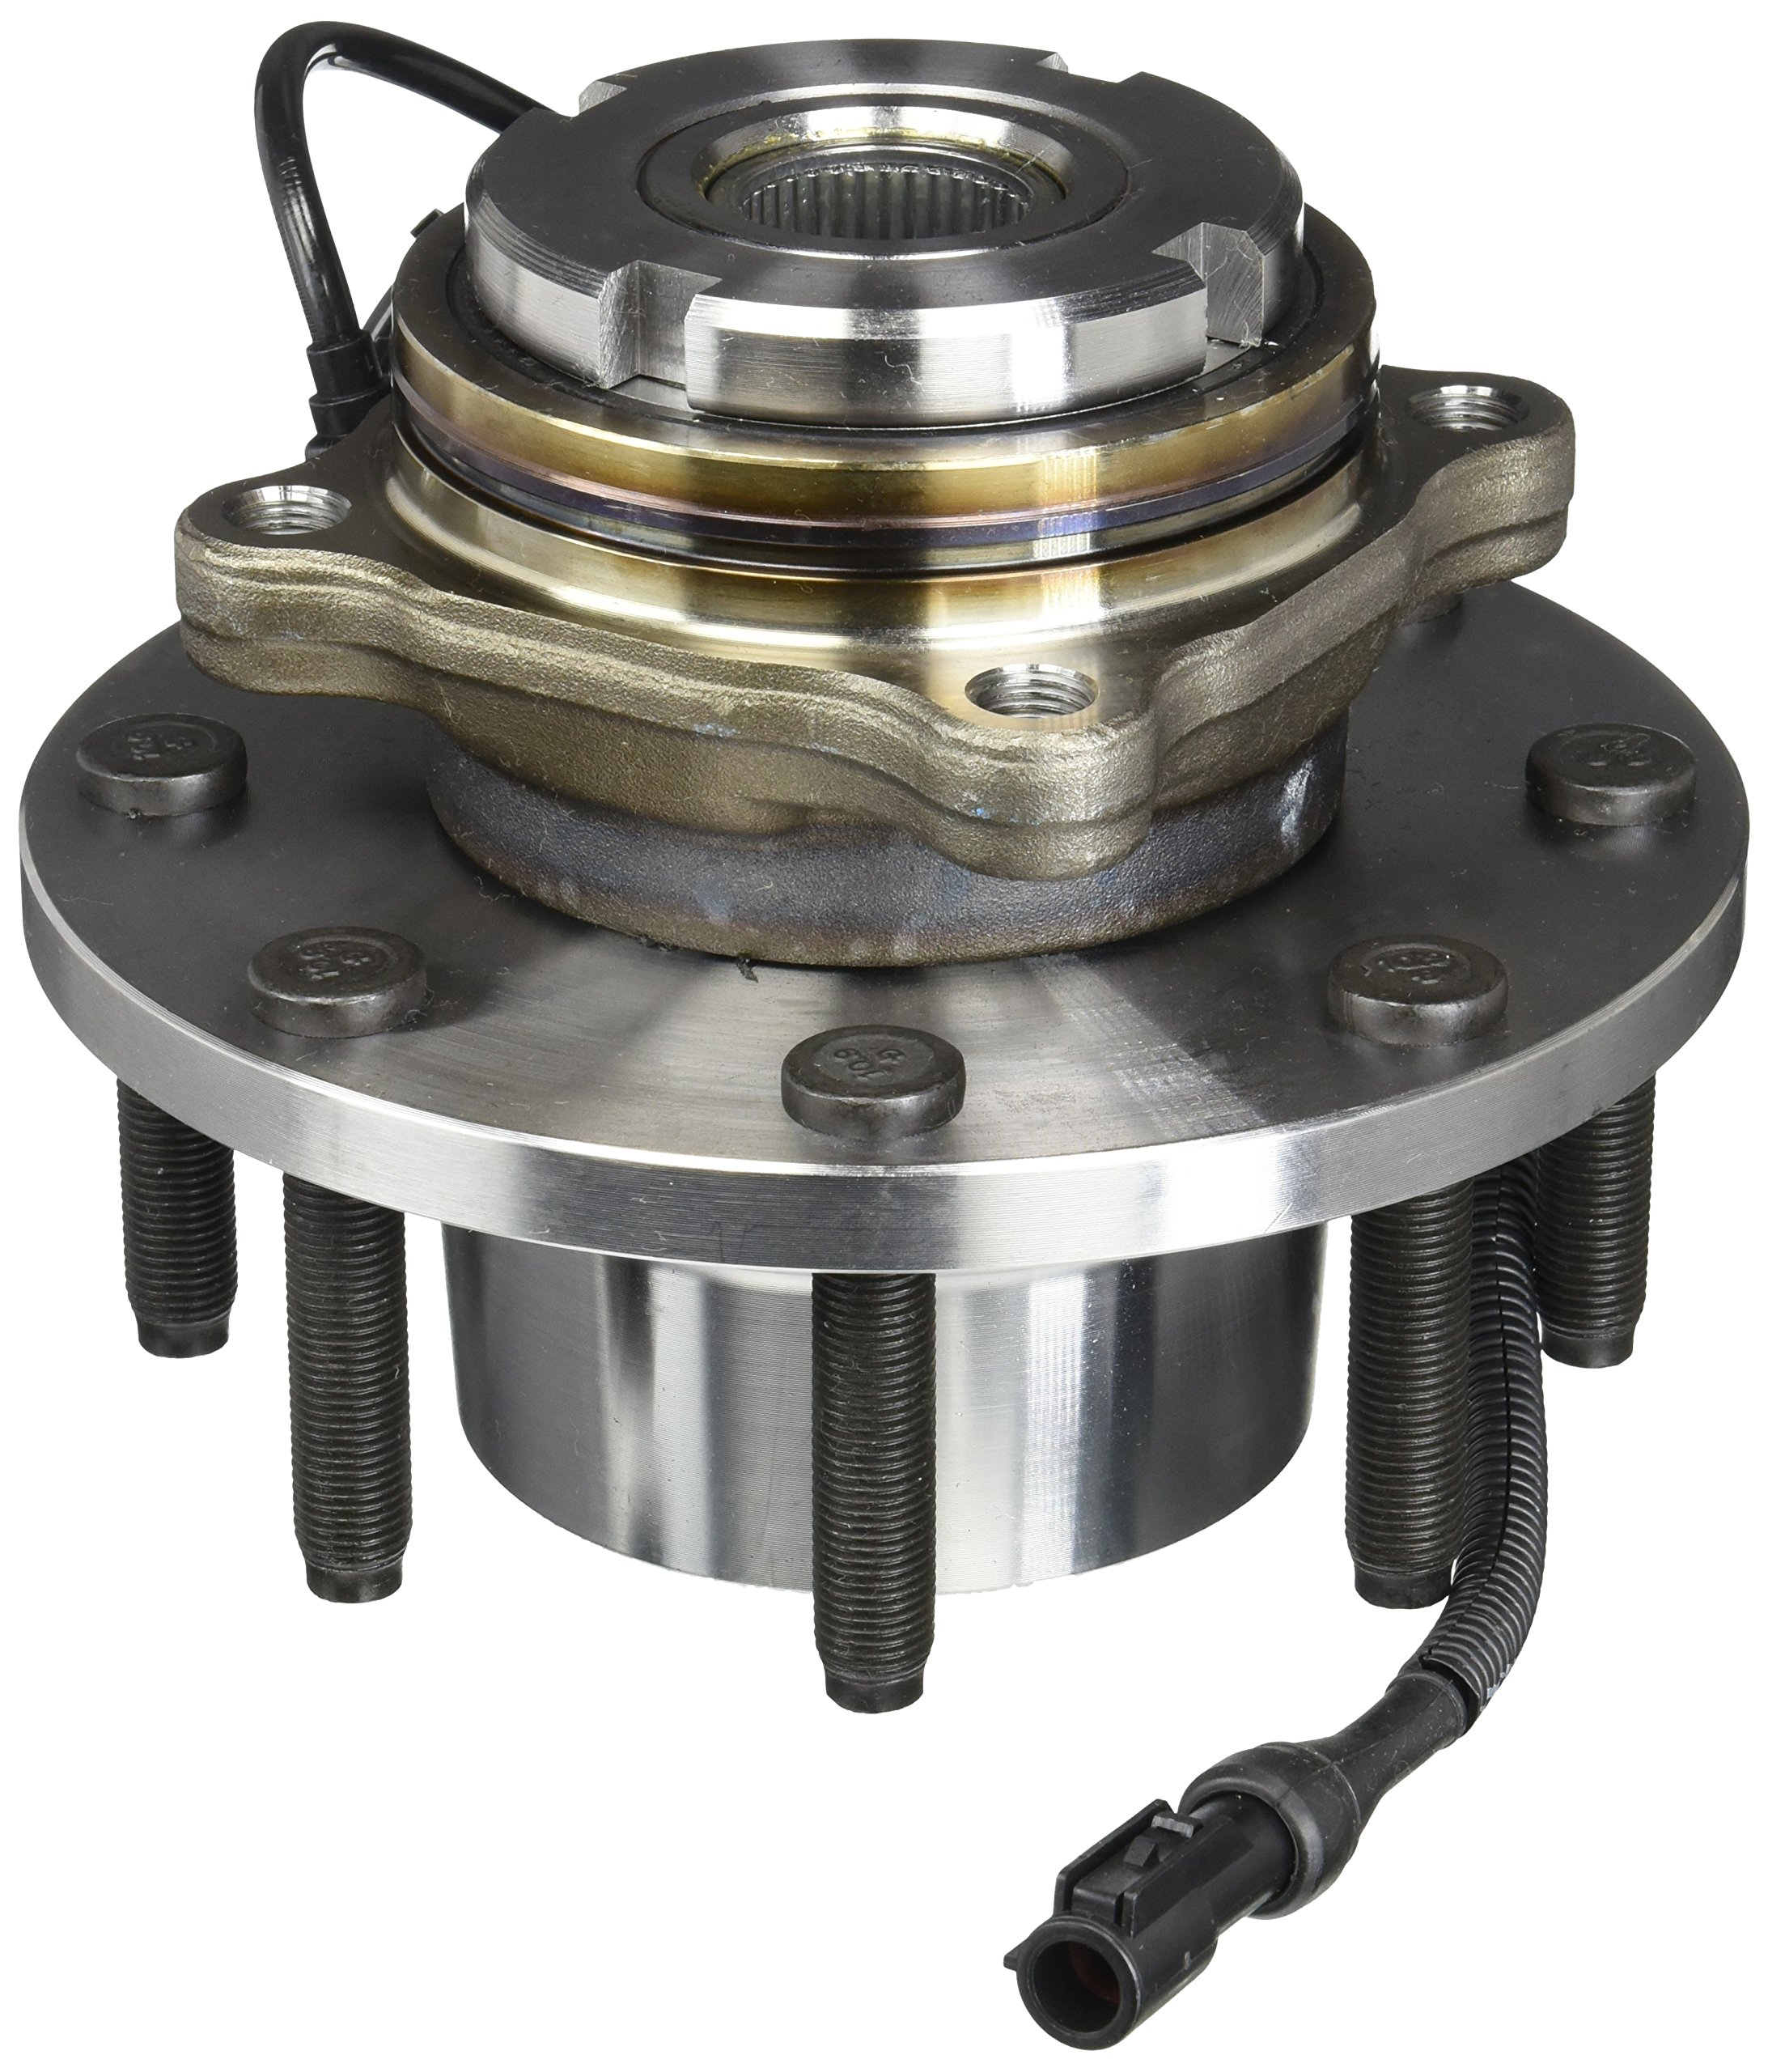 Timken SP580205 Axle Bearing and Hub Assembly by Timken